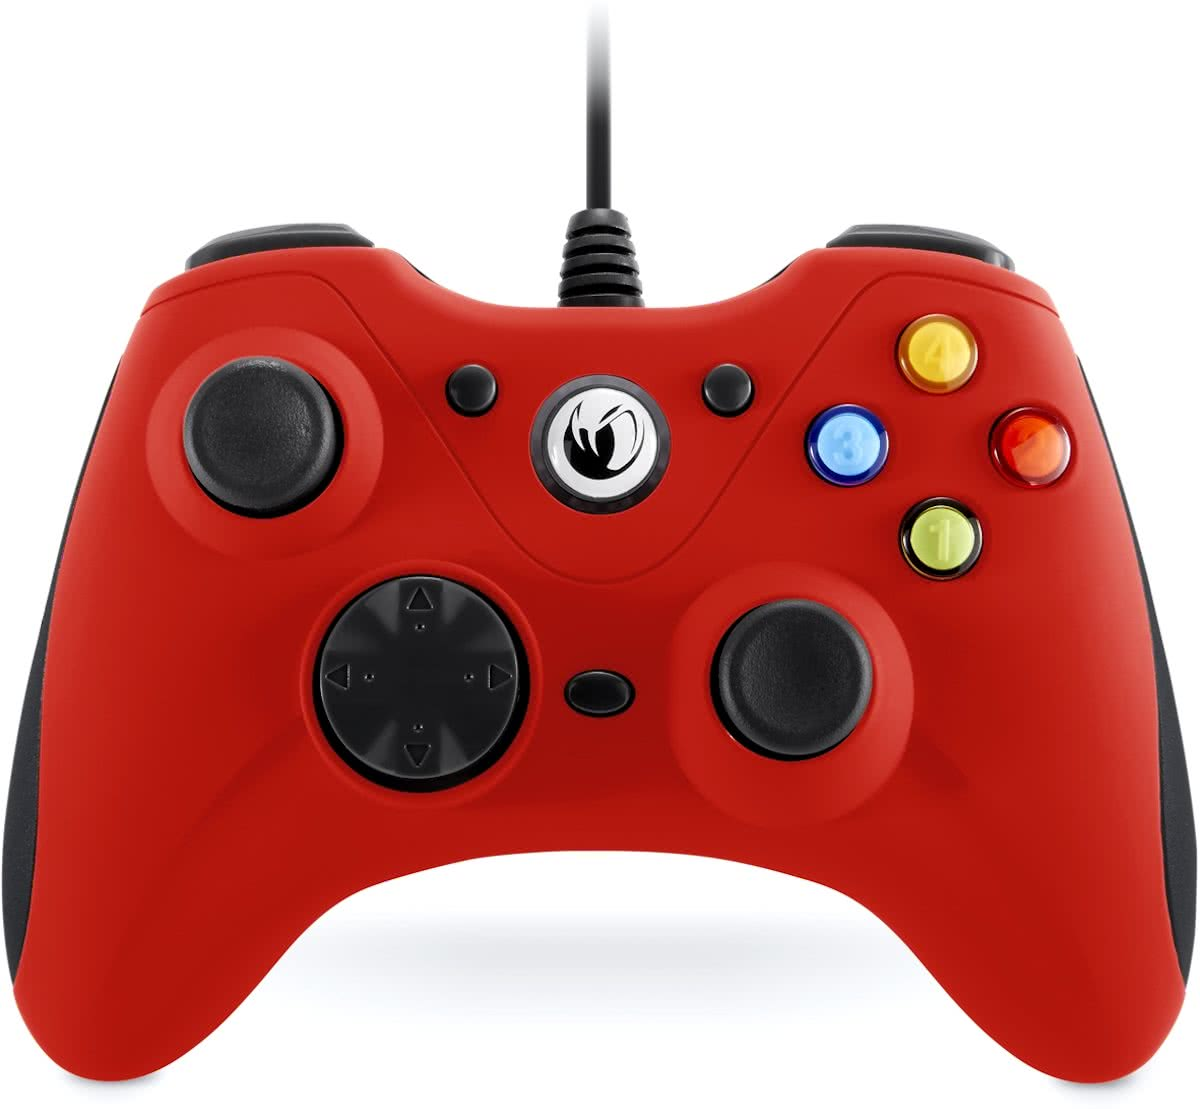 PCGC-100RED Wired Gaming   - Rood (PC)